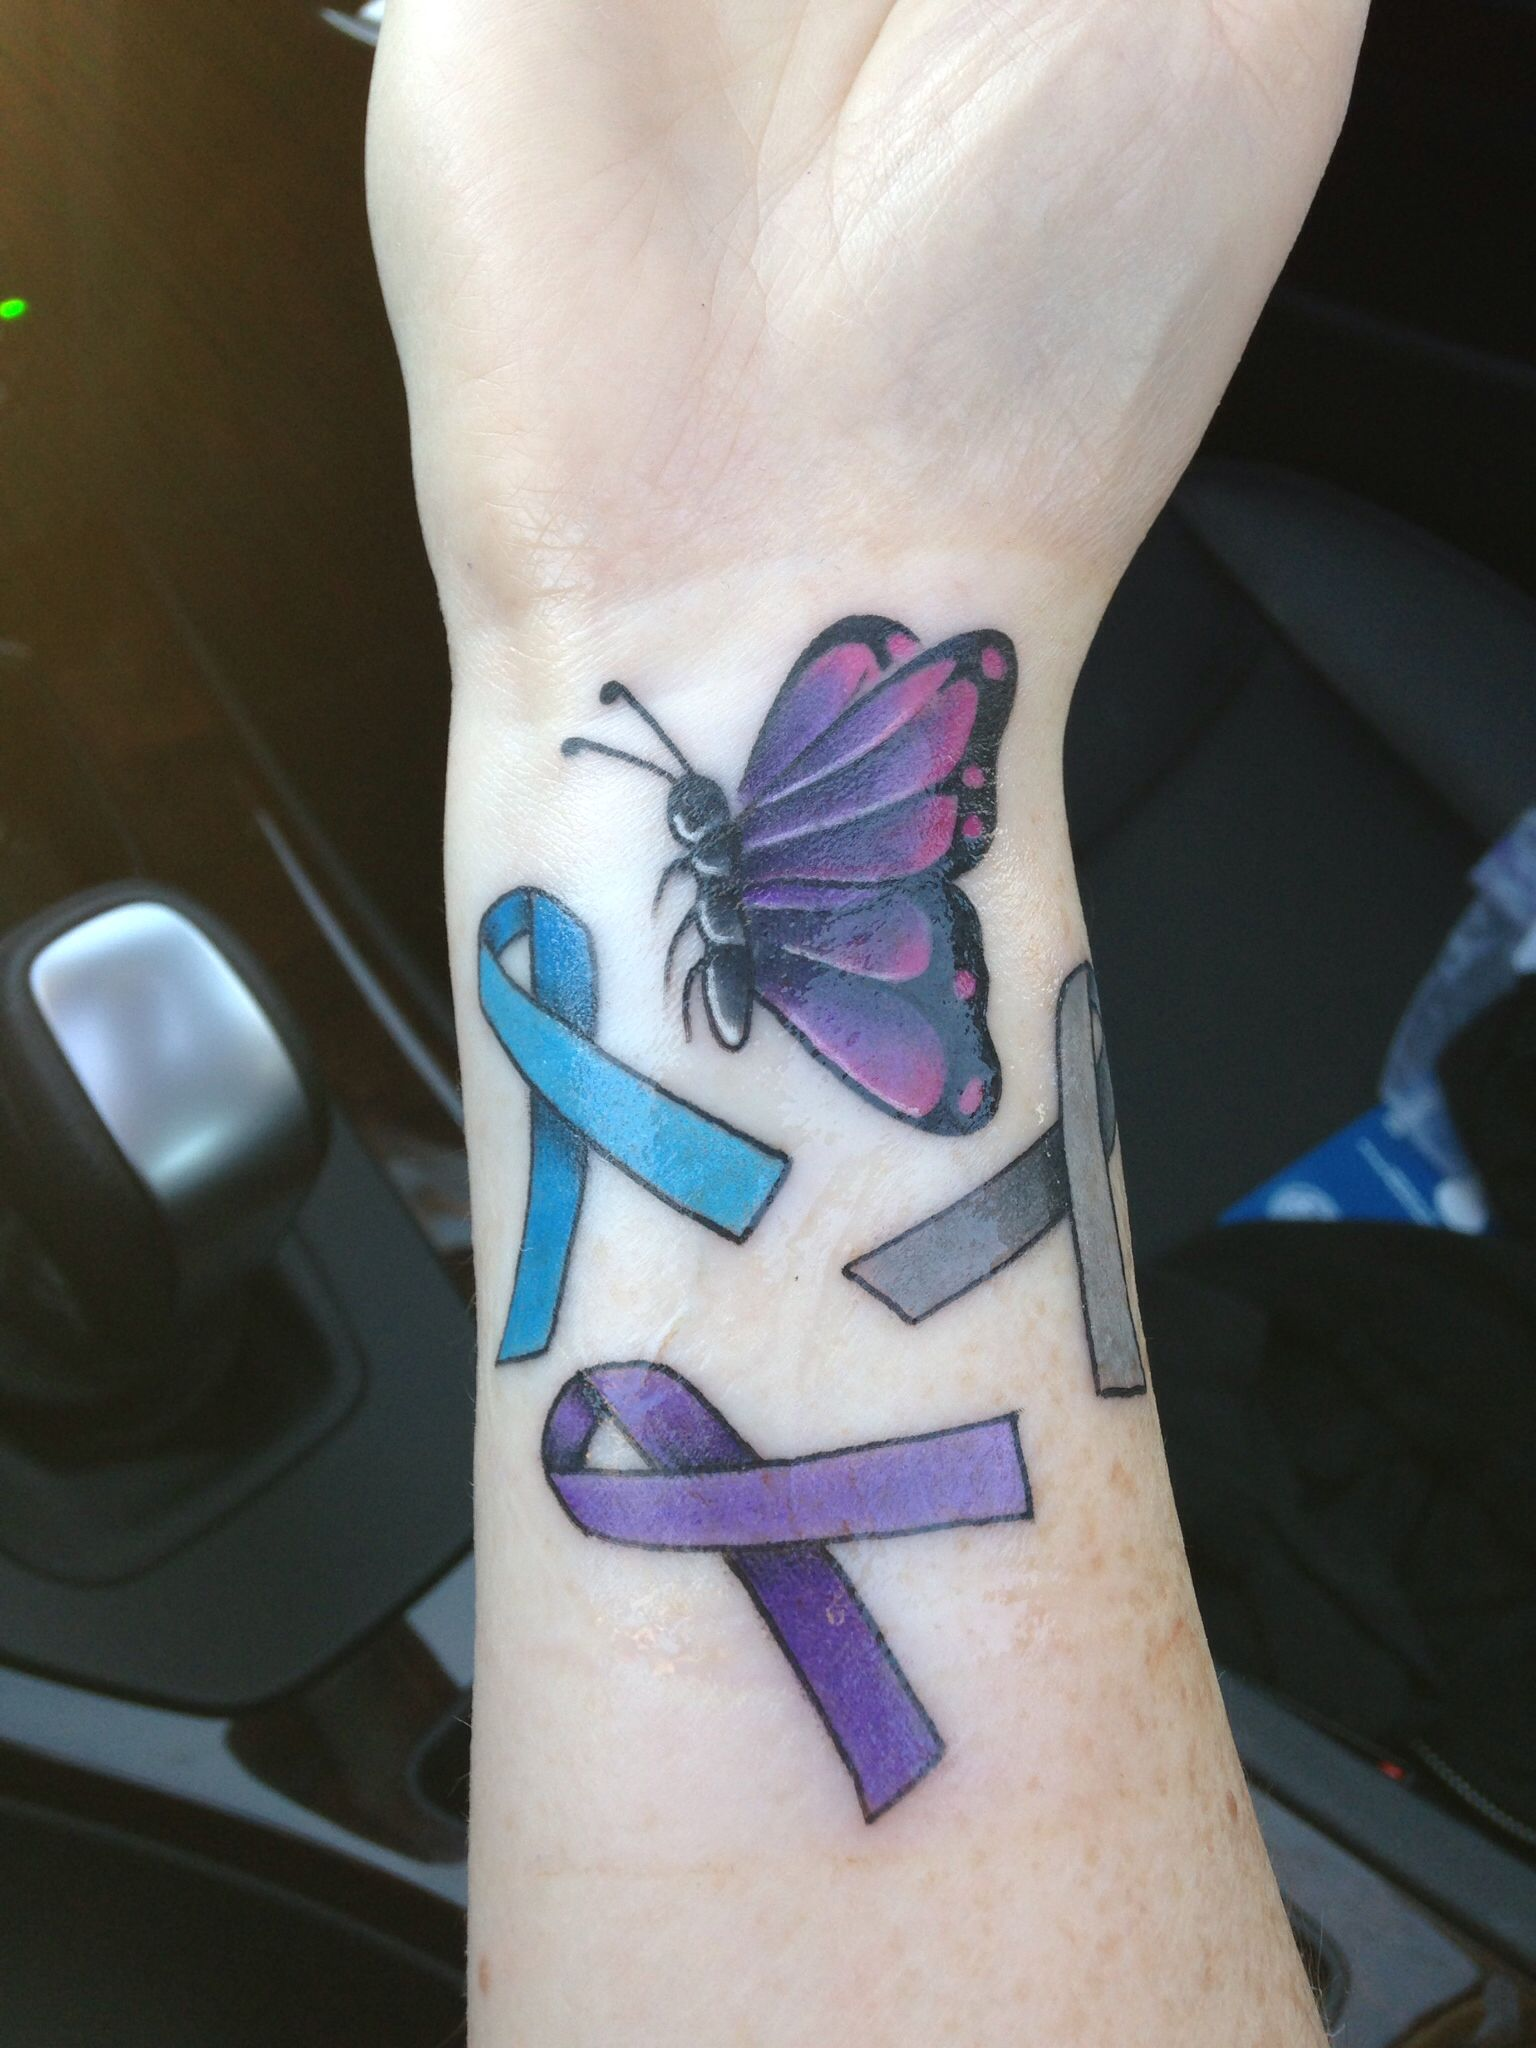 Butterfly tattoo w/3 awareness ribbons. Blue Arthritis